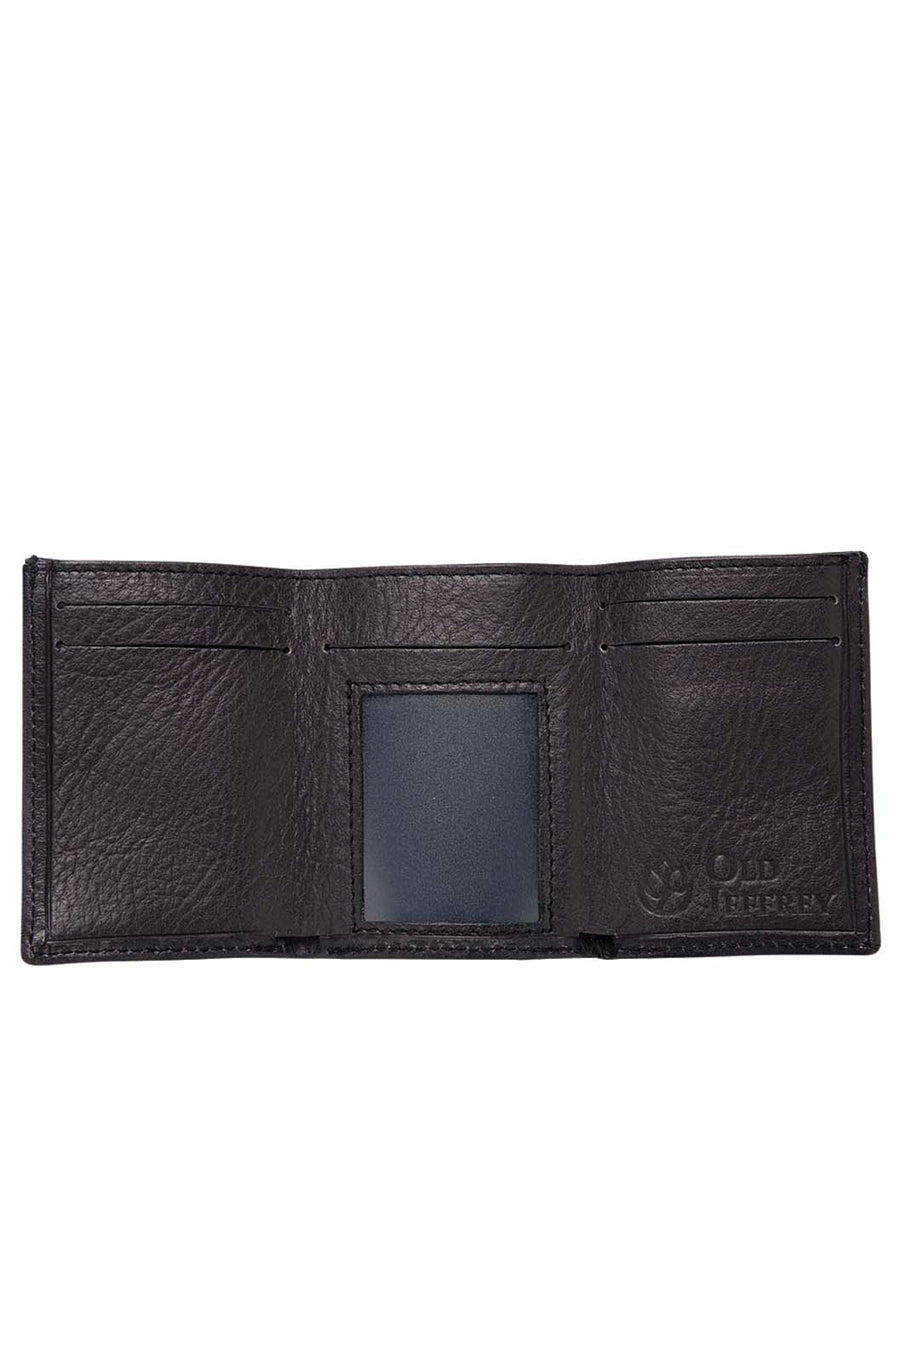 Brown Leather Wallet With Red Elastic